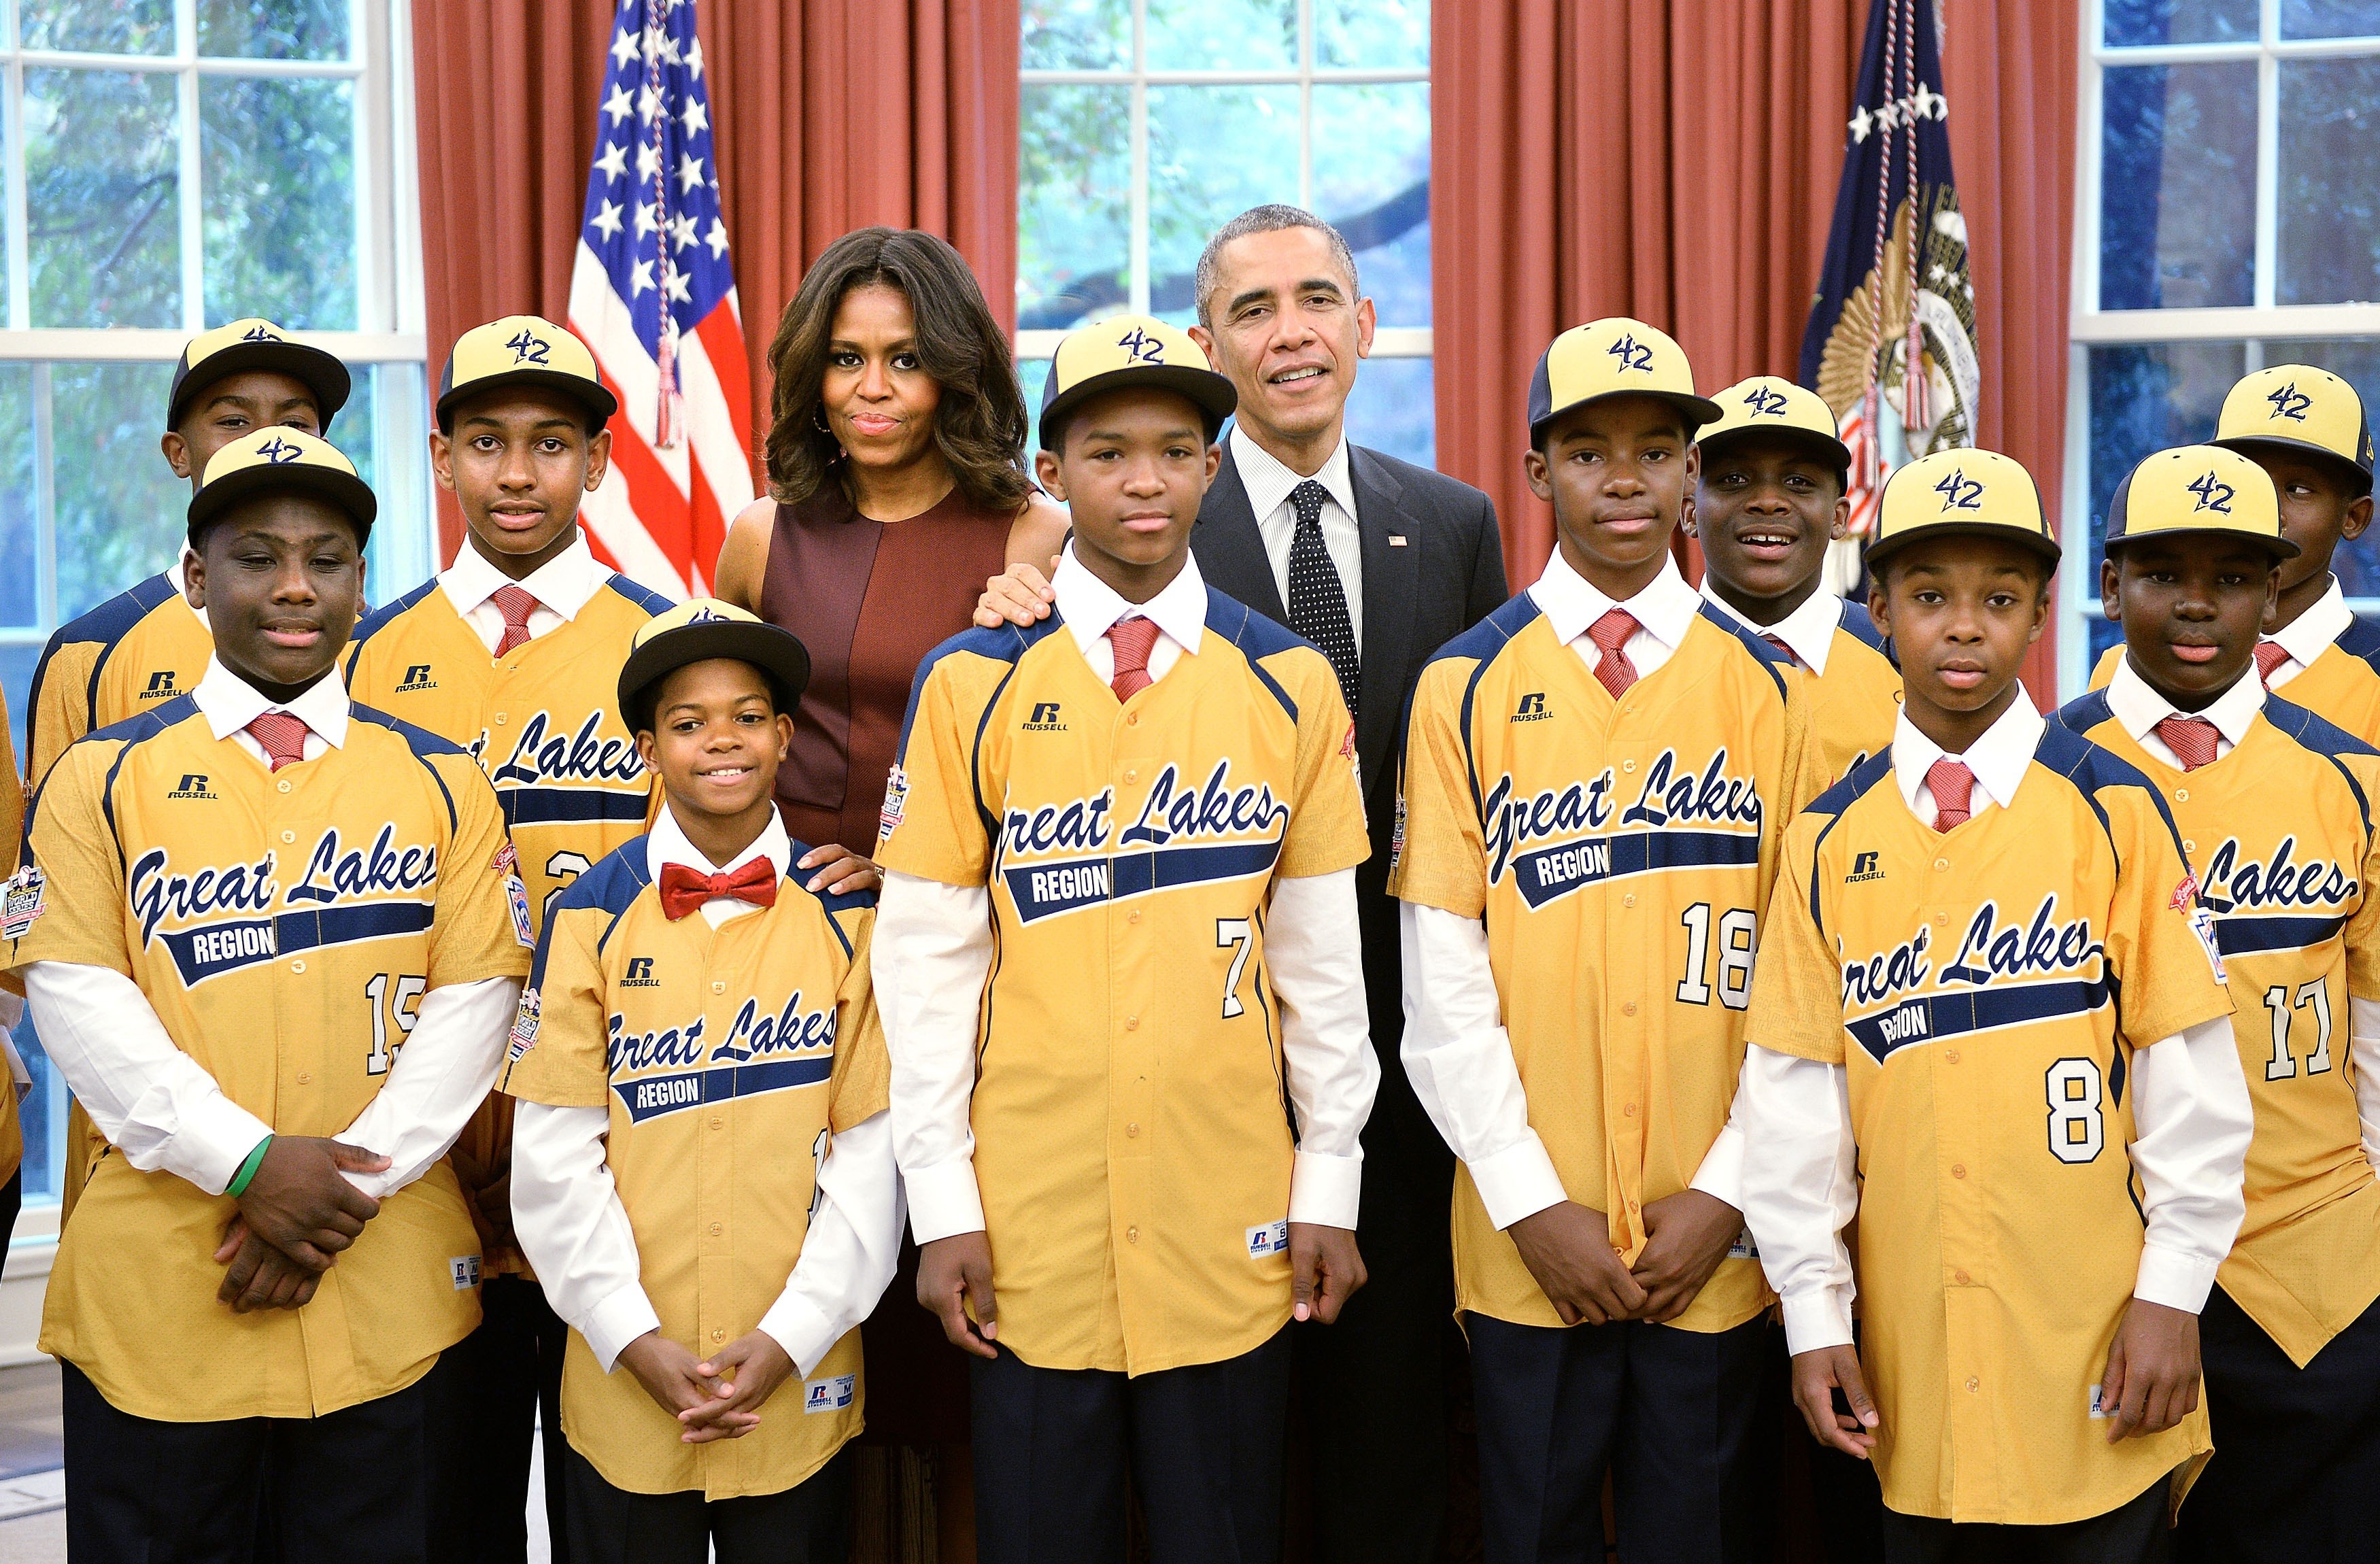 barack obama jackie robinson west